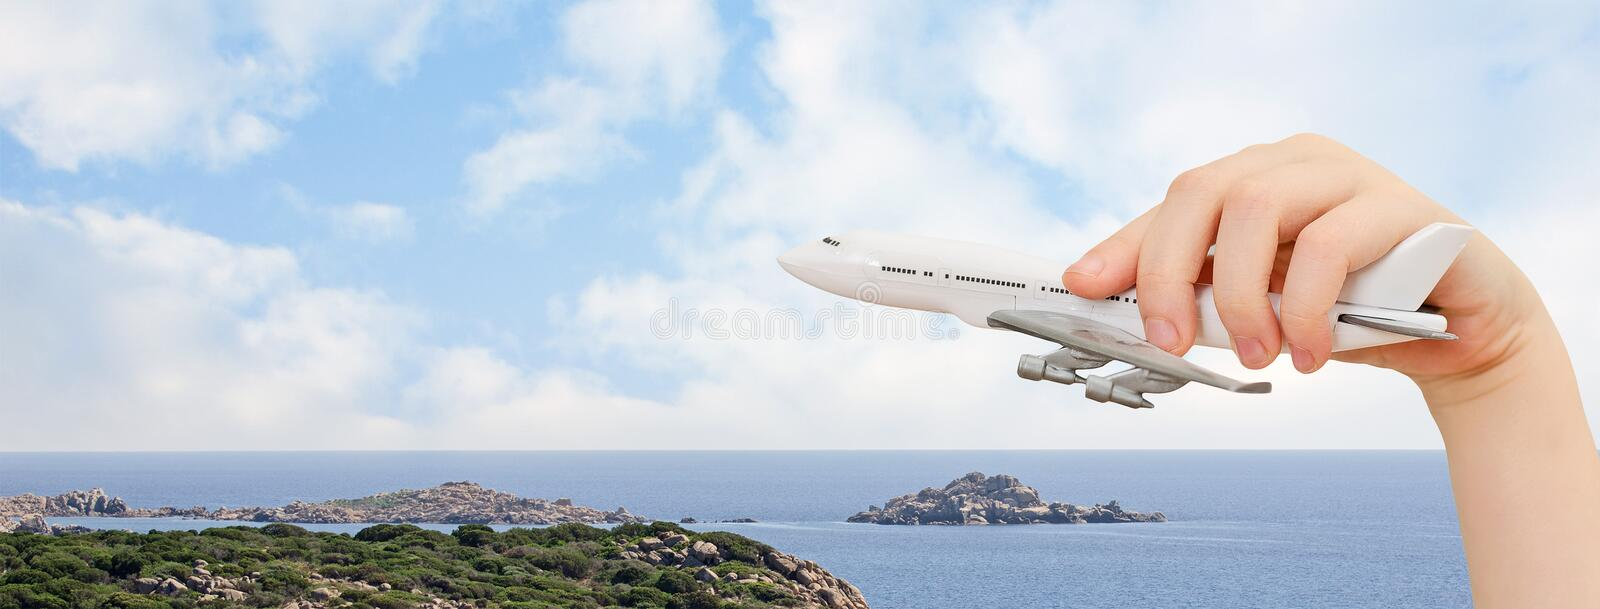 Child hand holding model airplane. royalty free stock image